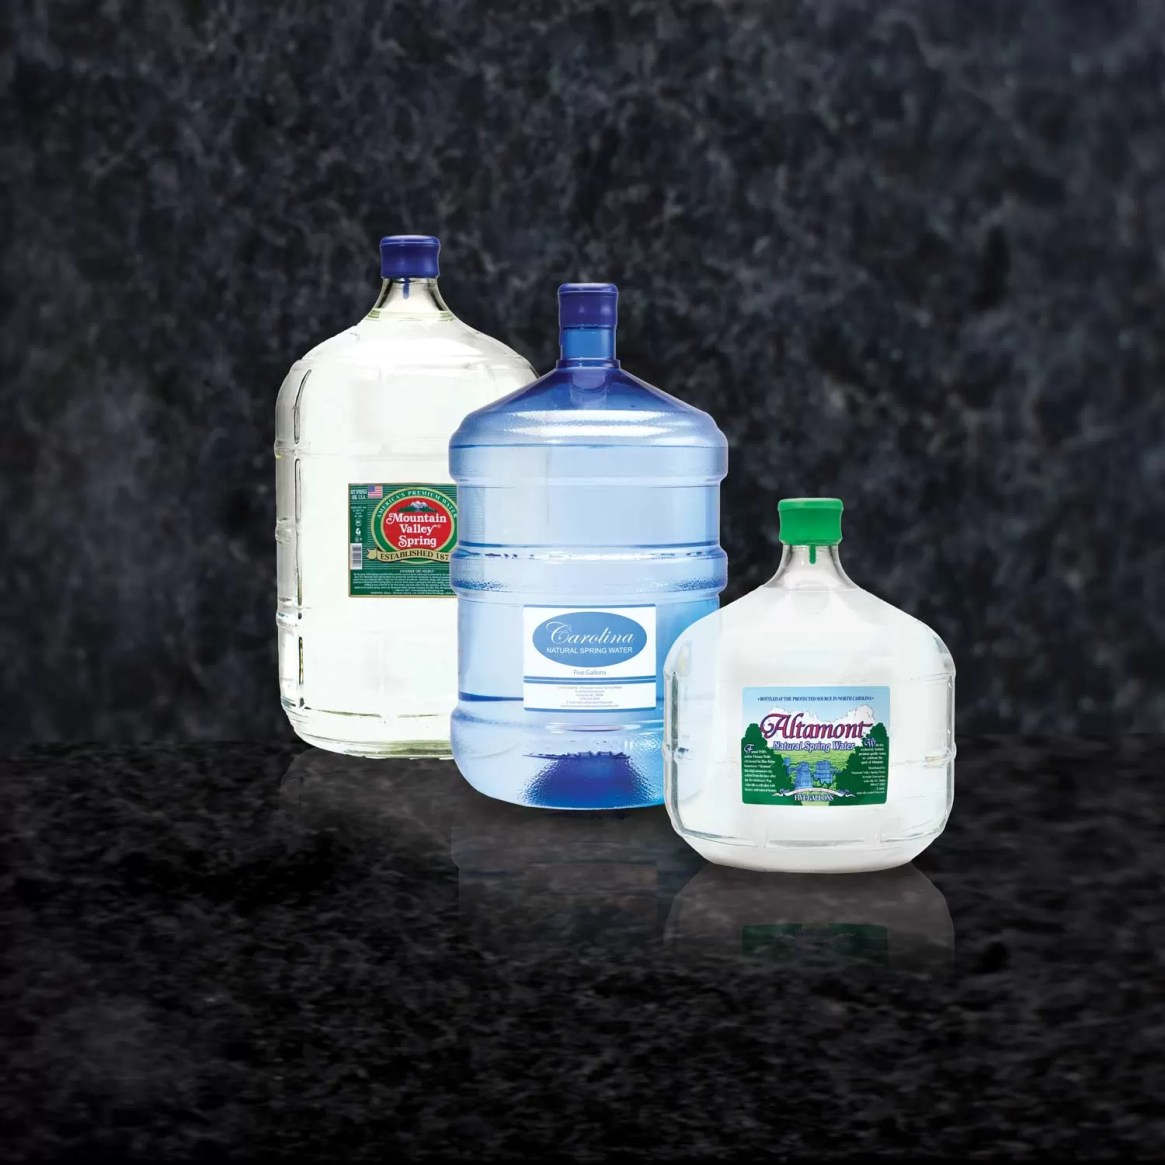 Products of Mountain Valley Spring Water